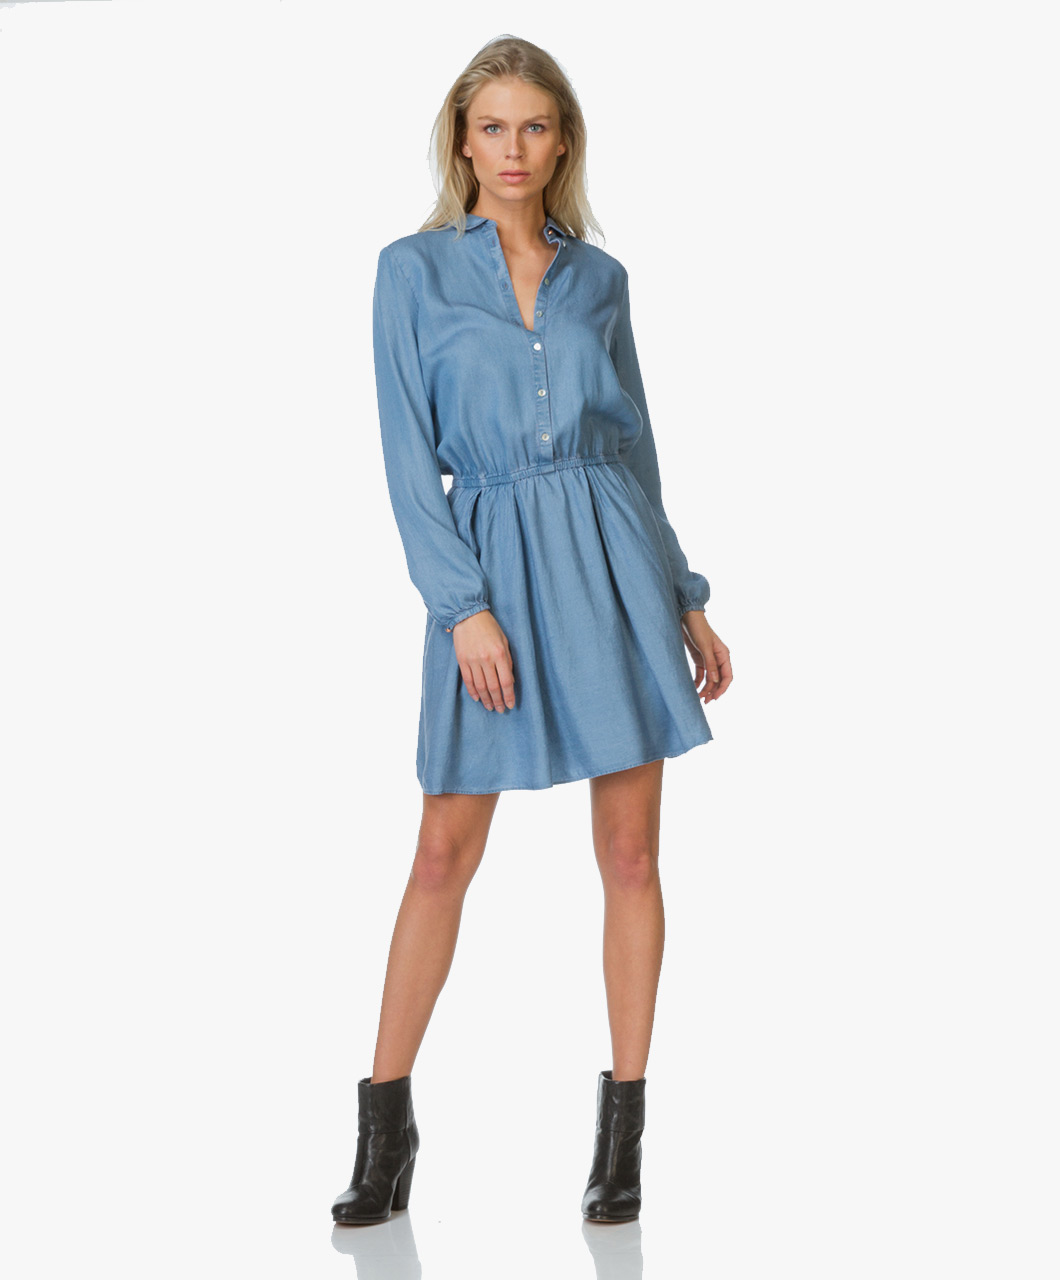 BOSS Orange Clace Denim Shirt Dress - Open Blue - clace | 50332785 460 -  dark